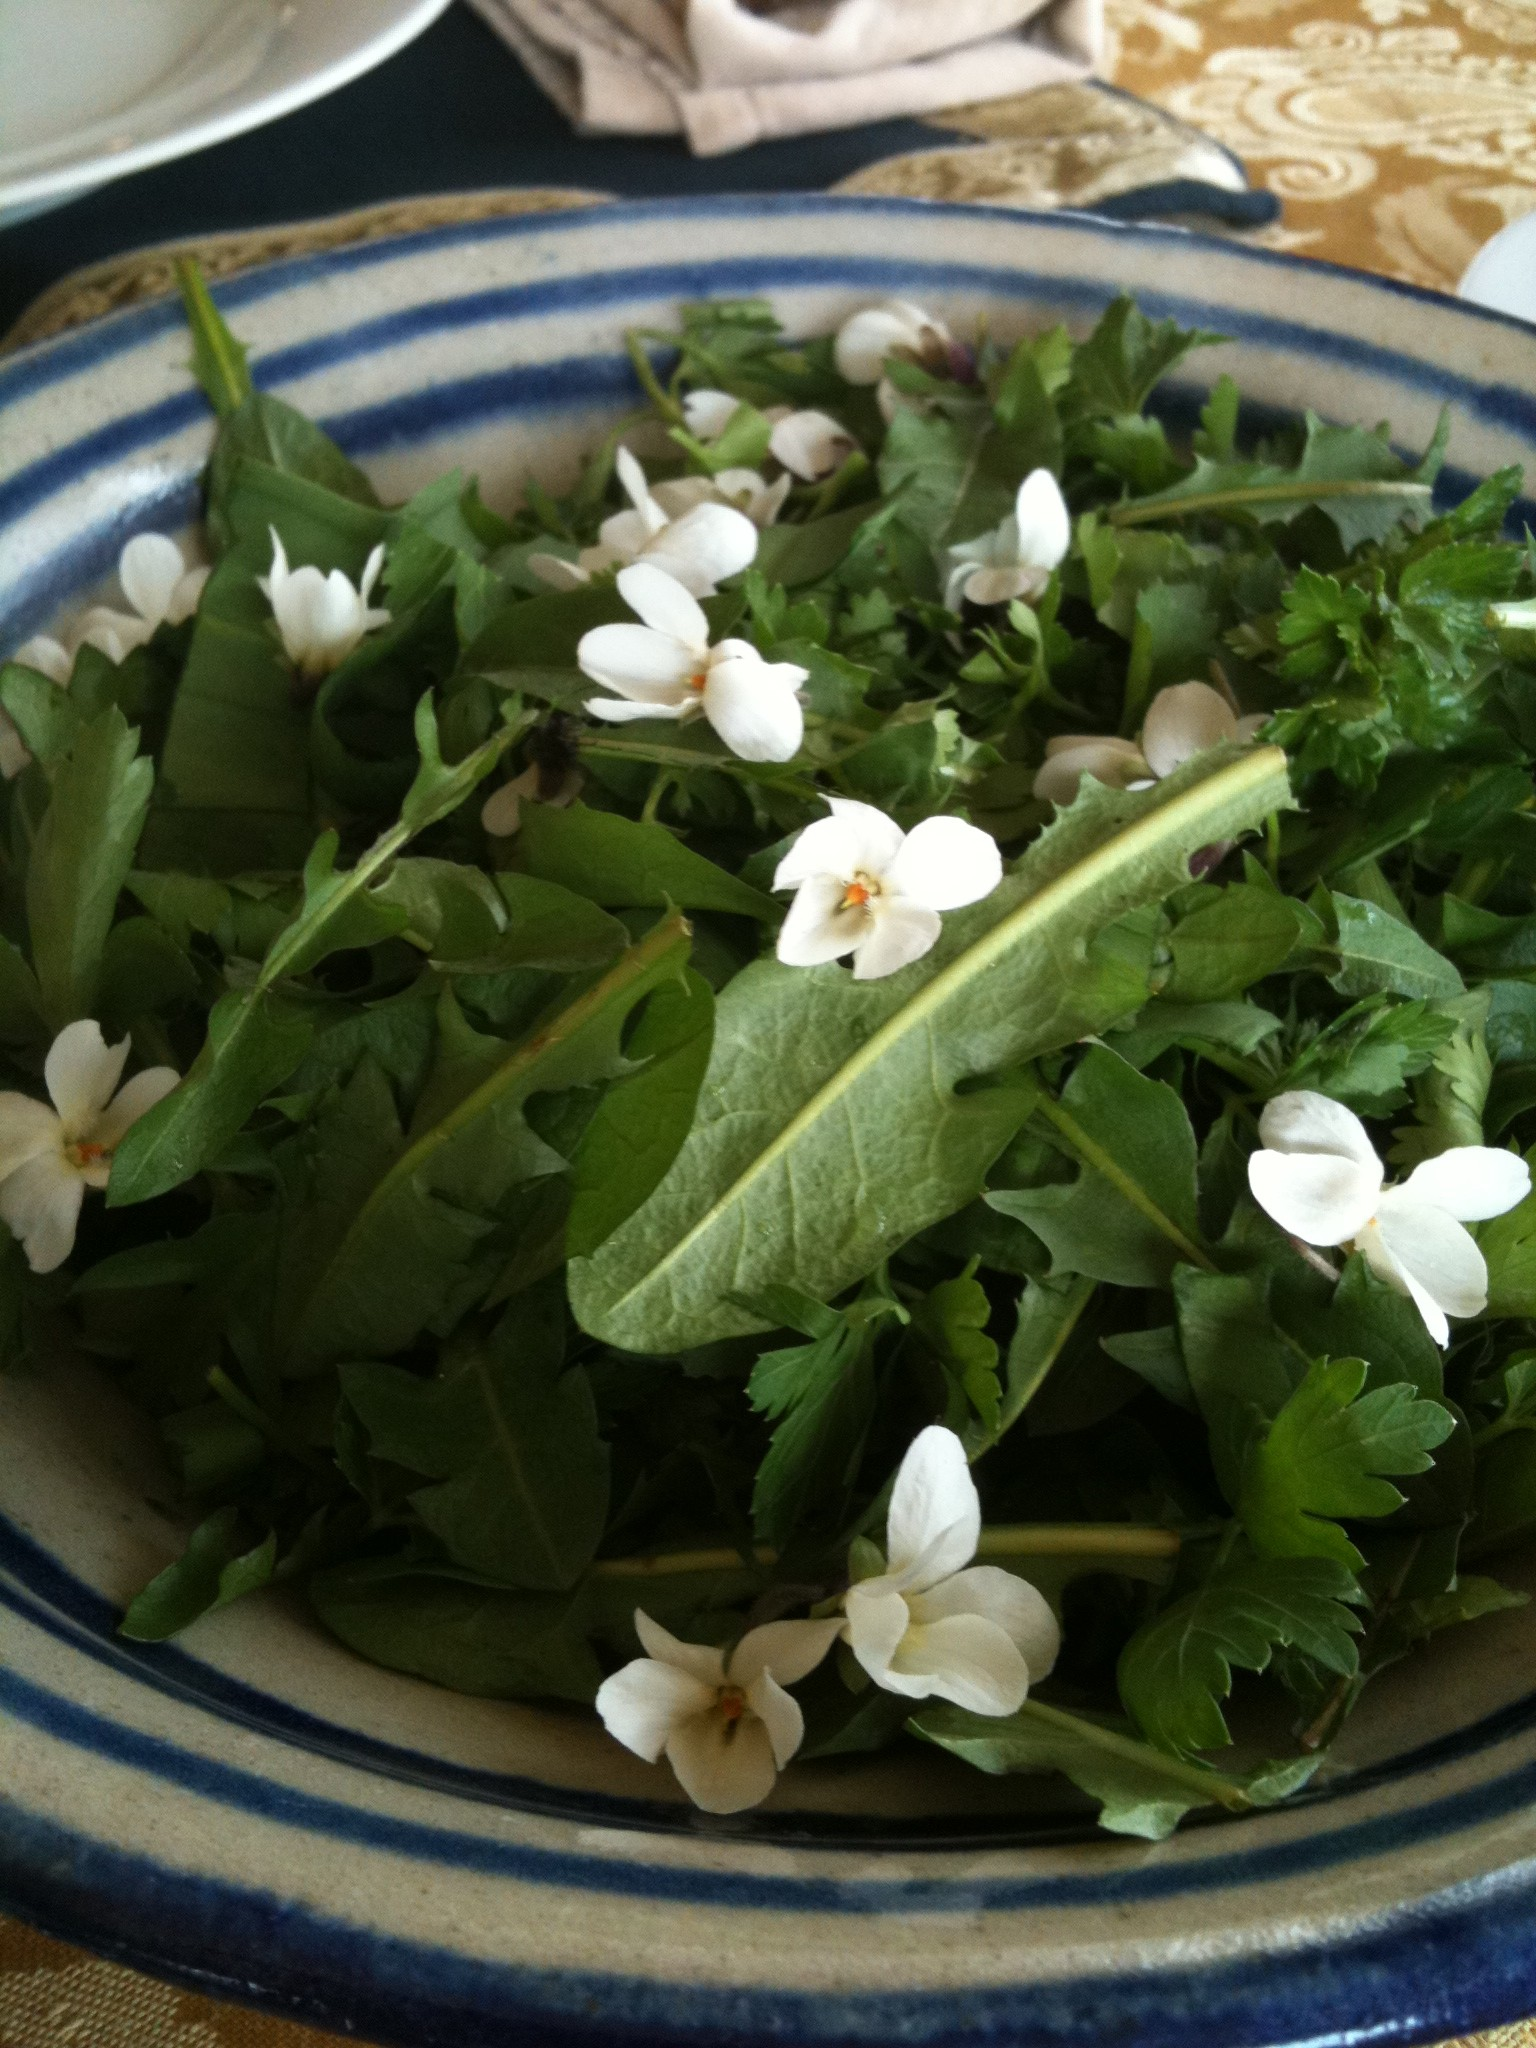 Wild Green Salad topped with Violets